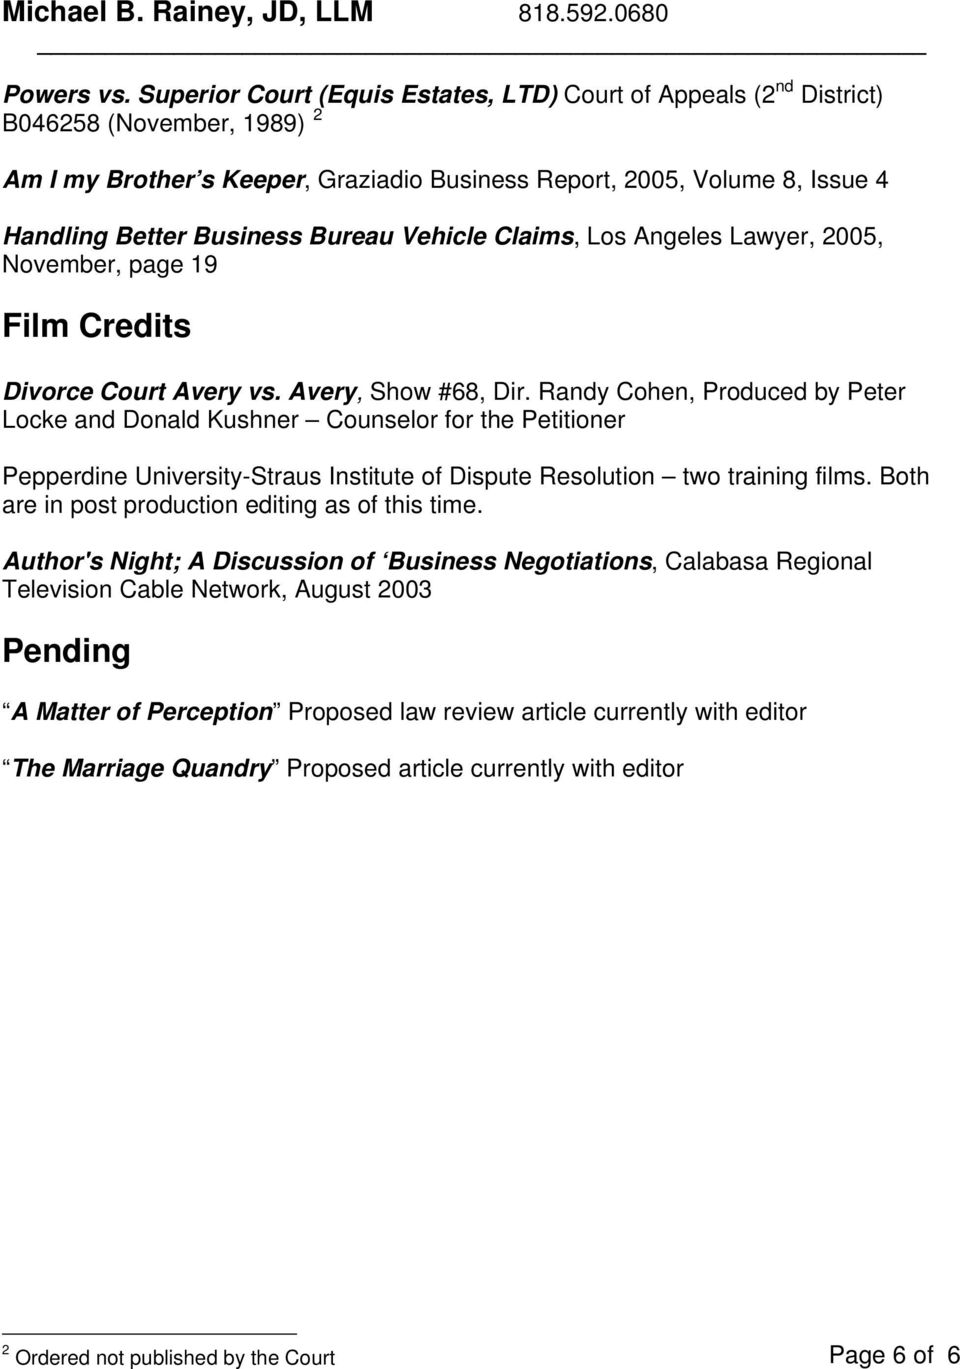 Bureau Vehicle Claims, Los Angeles Lawyer, 2005, November, page 19 Film Credits Divorce Court Avery vs. Avery, Show #68, Dir.